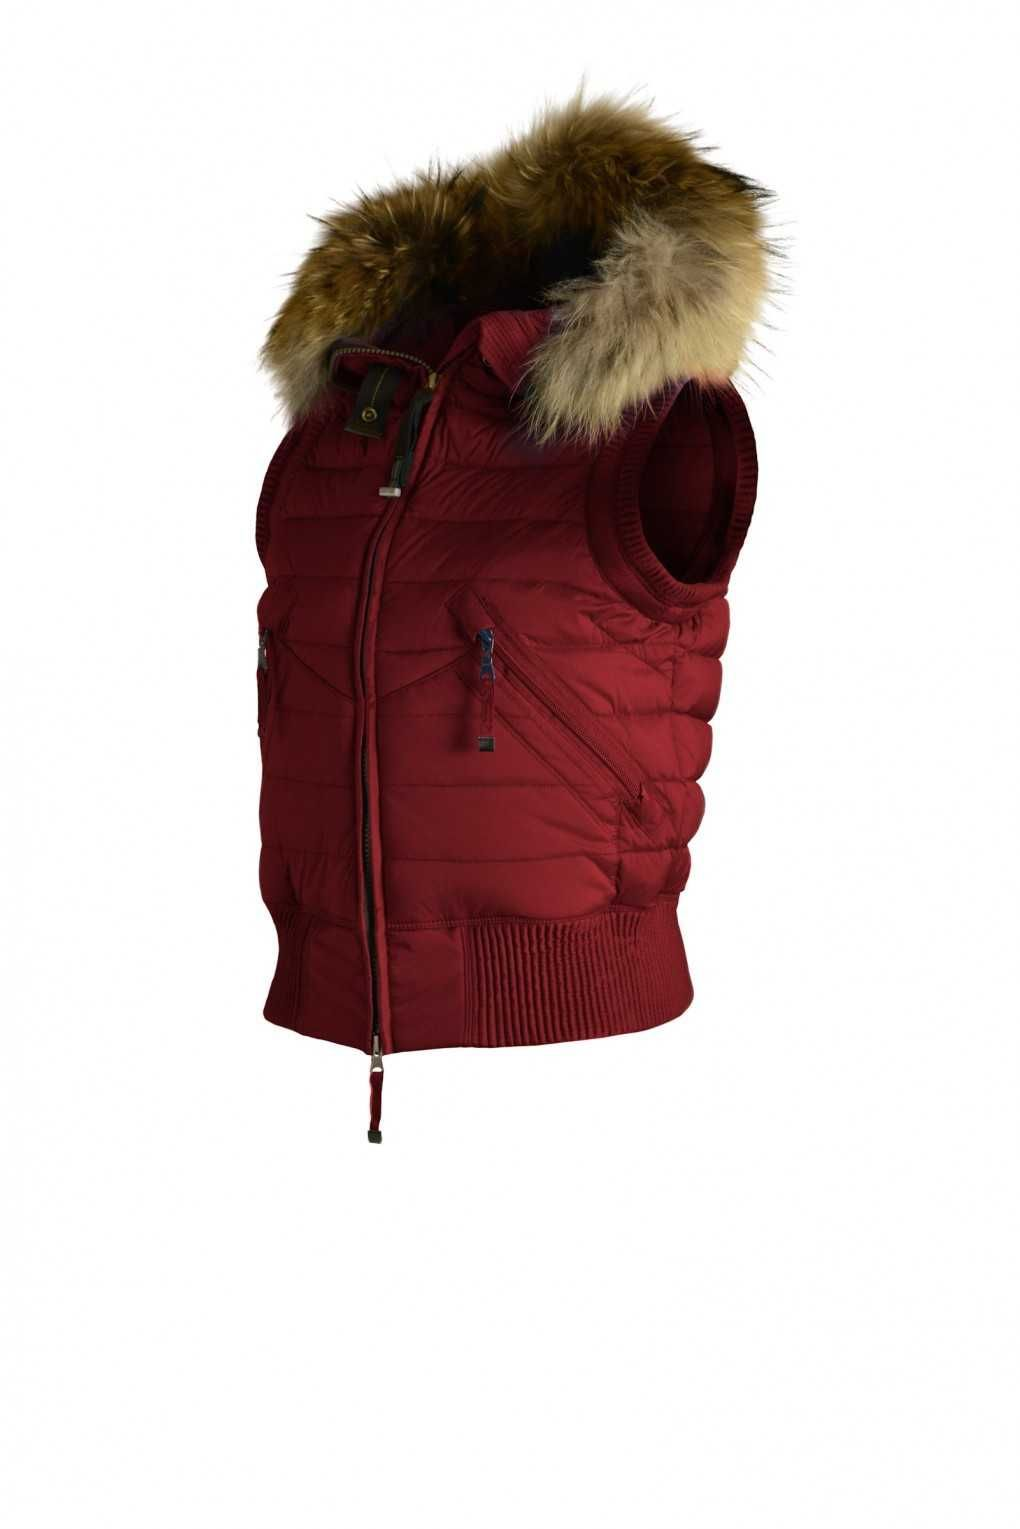 Parajumpers Coats Sale Factory Outlet,Big Discount From Original Parajumpers Outerwear UK! Wholesale Parajumper